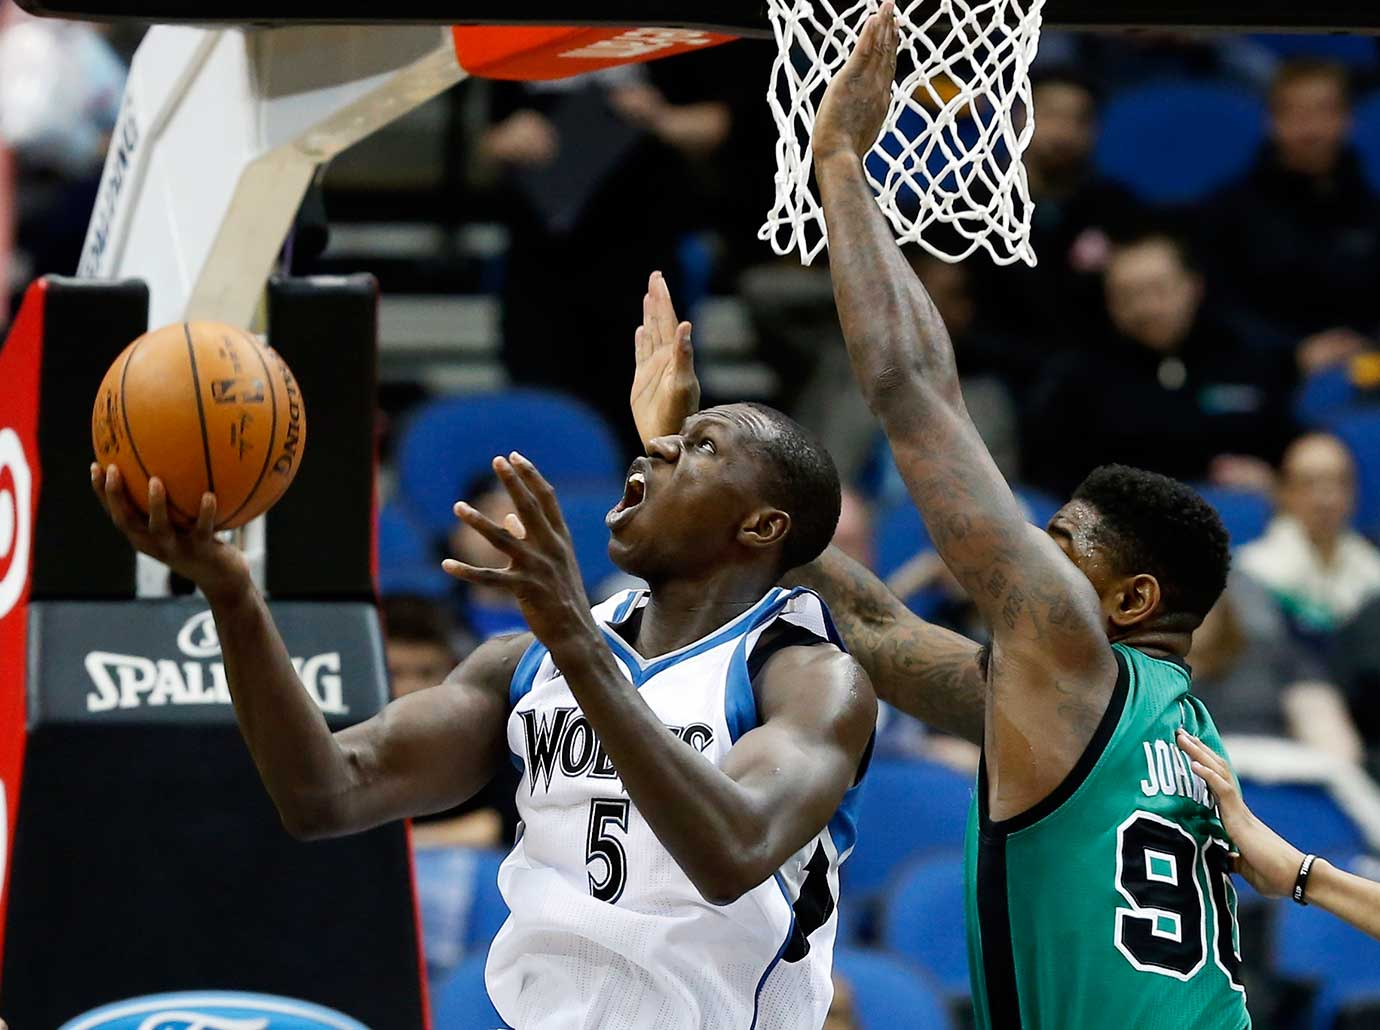 Minnesota Timberwolves' Gorgui Dieng eyes the basket as Amir Johnson of the Boston Celtics defends.